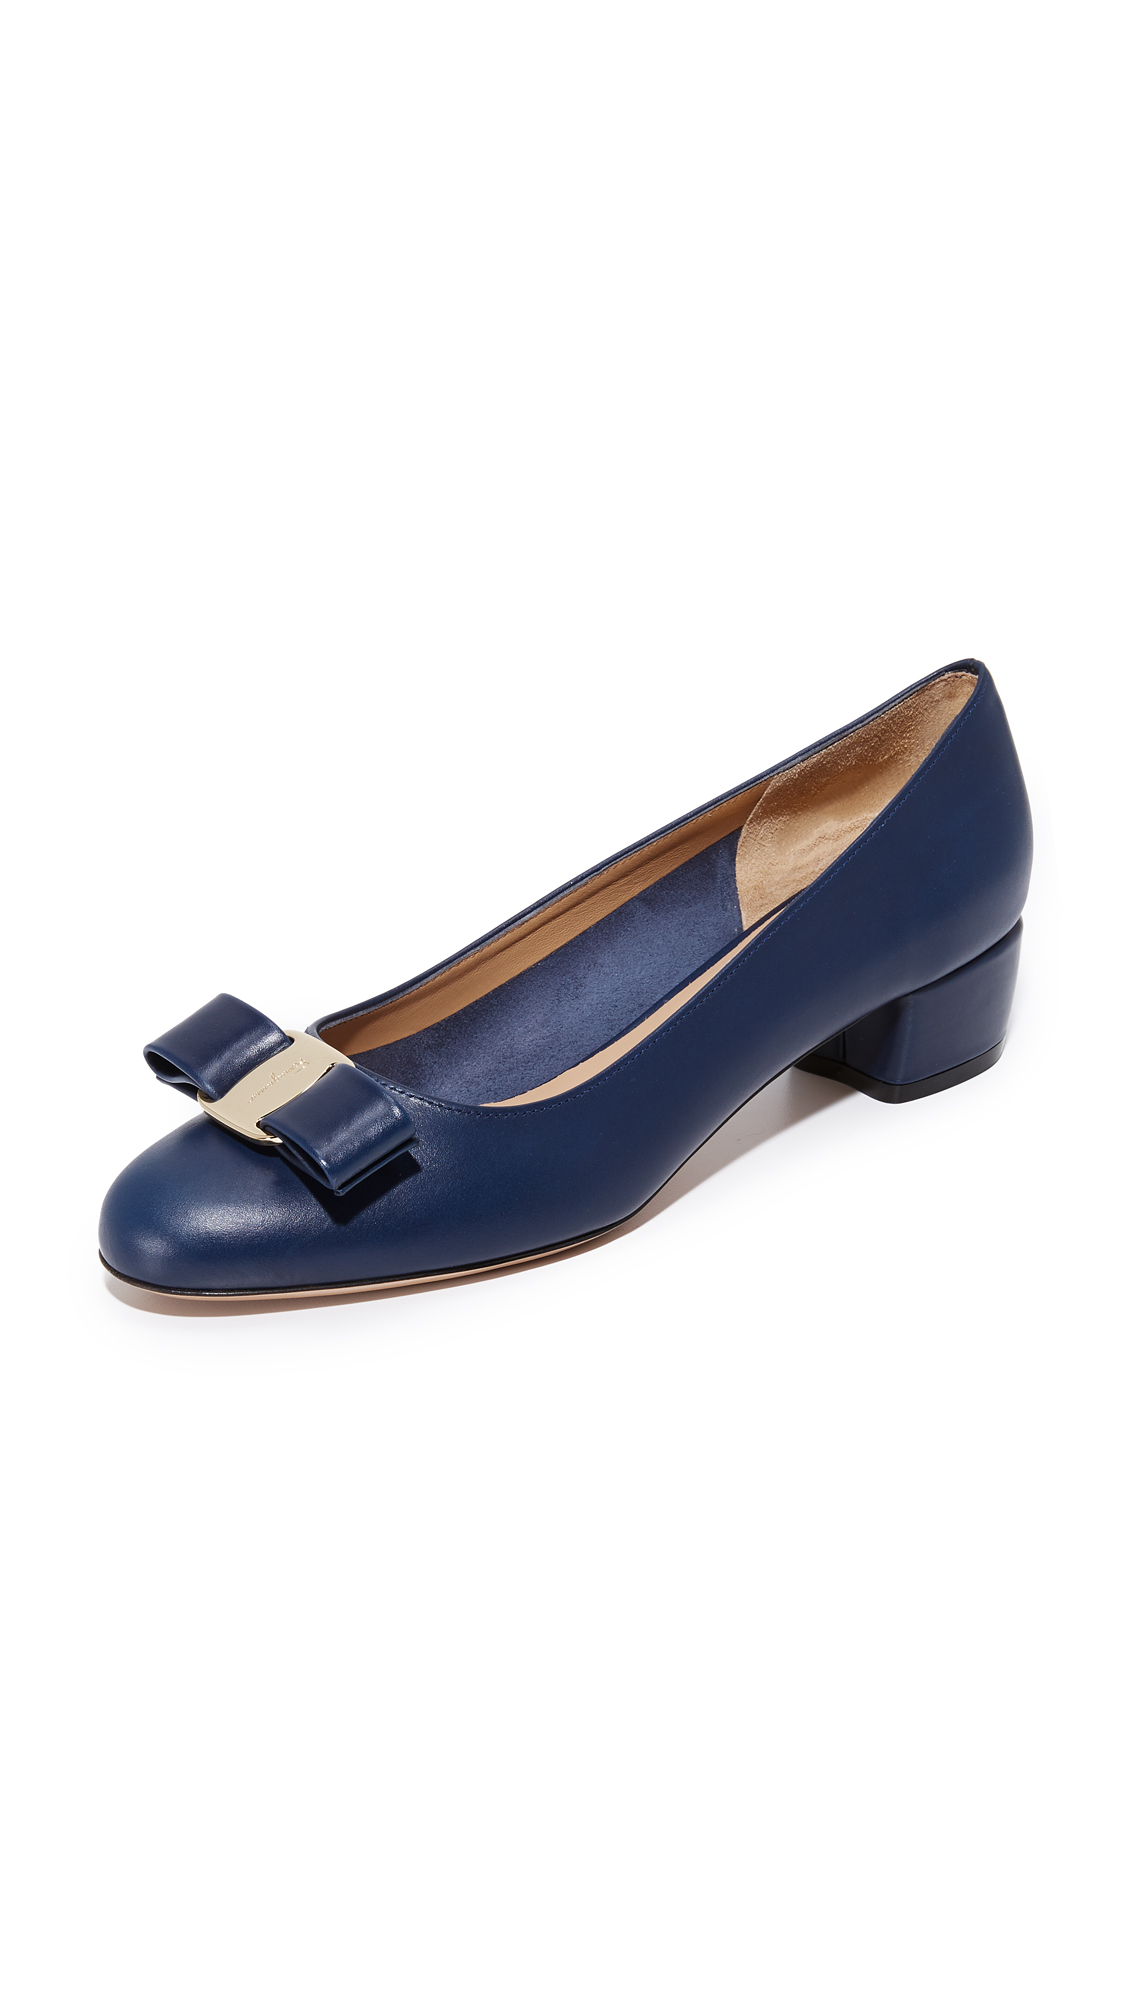 Salvatore Ferragamo Vara Low Heel Pumps - Oxford Blue